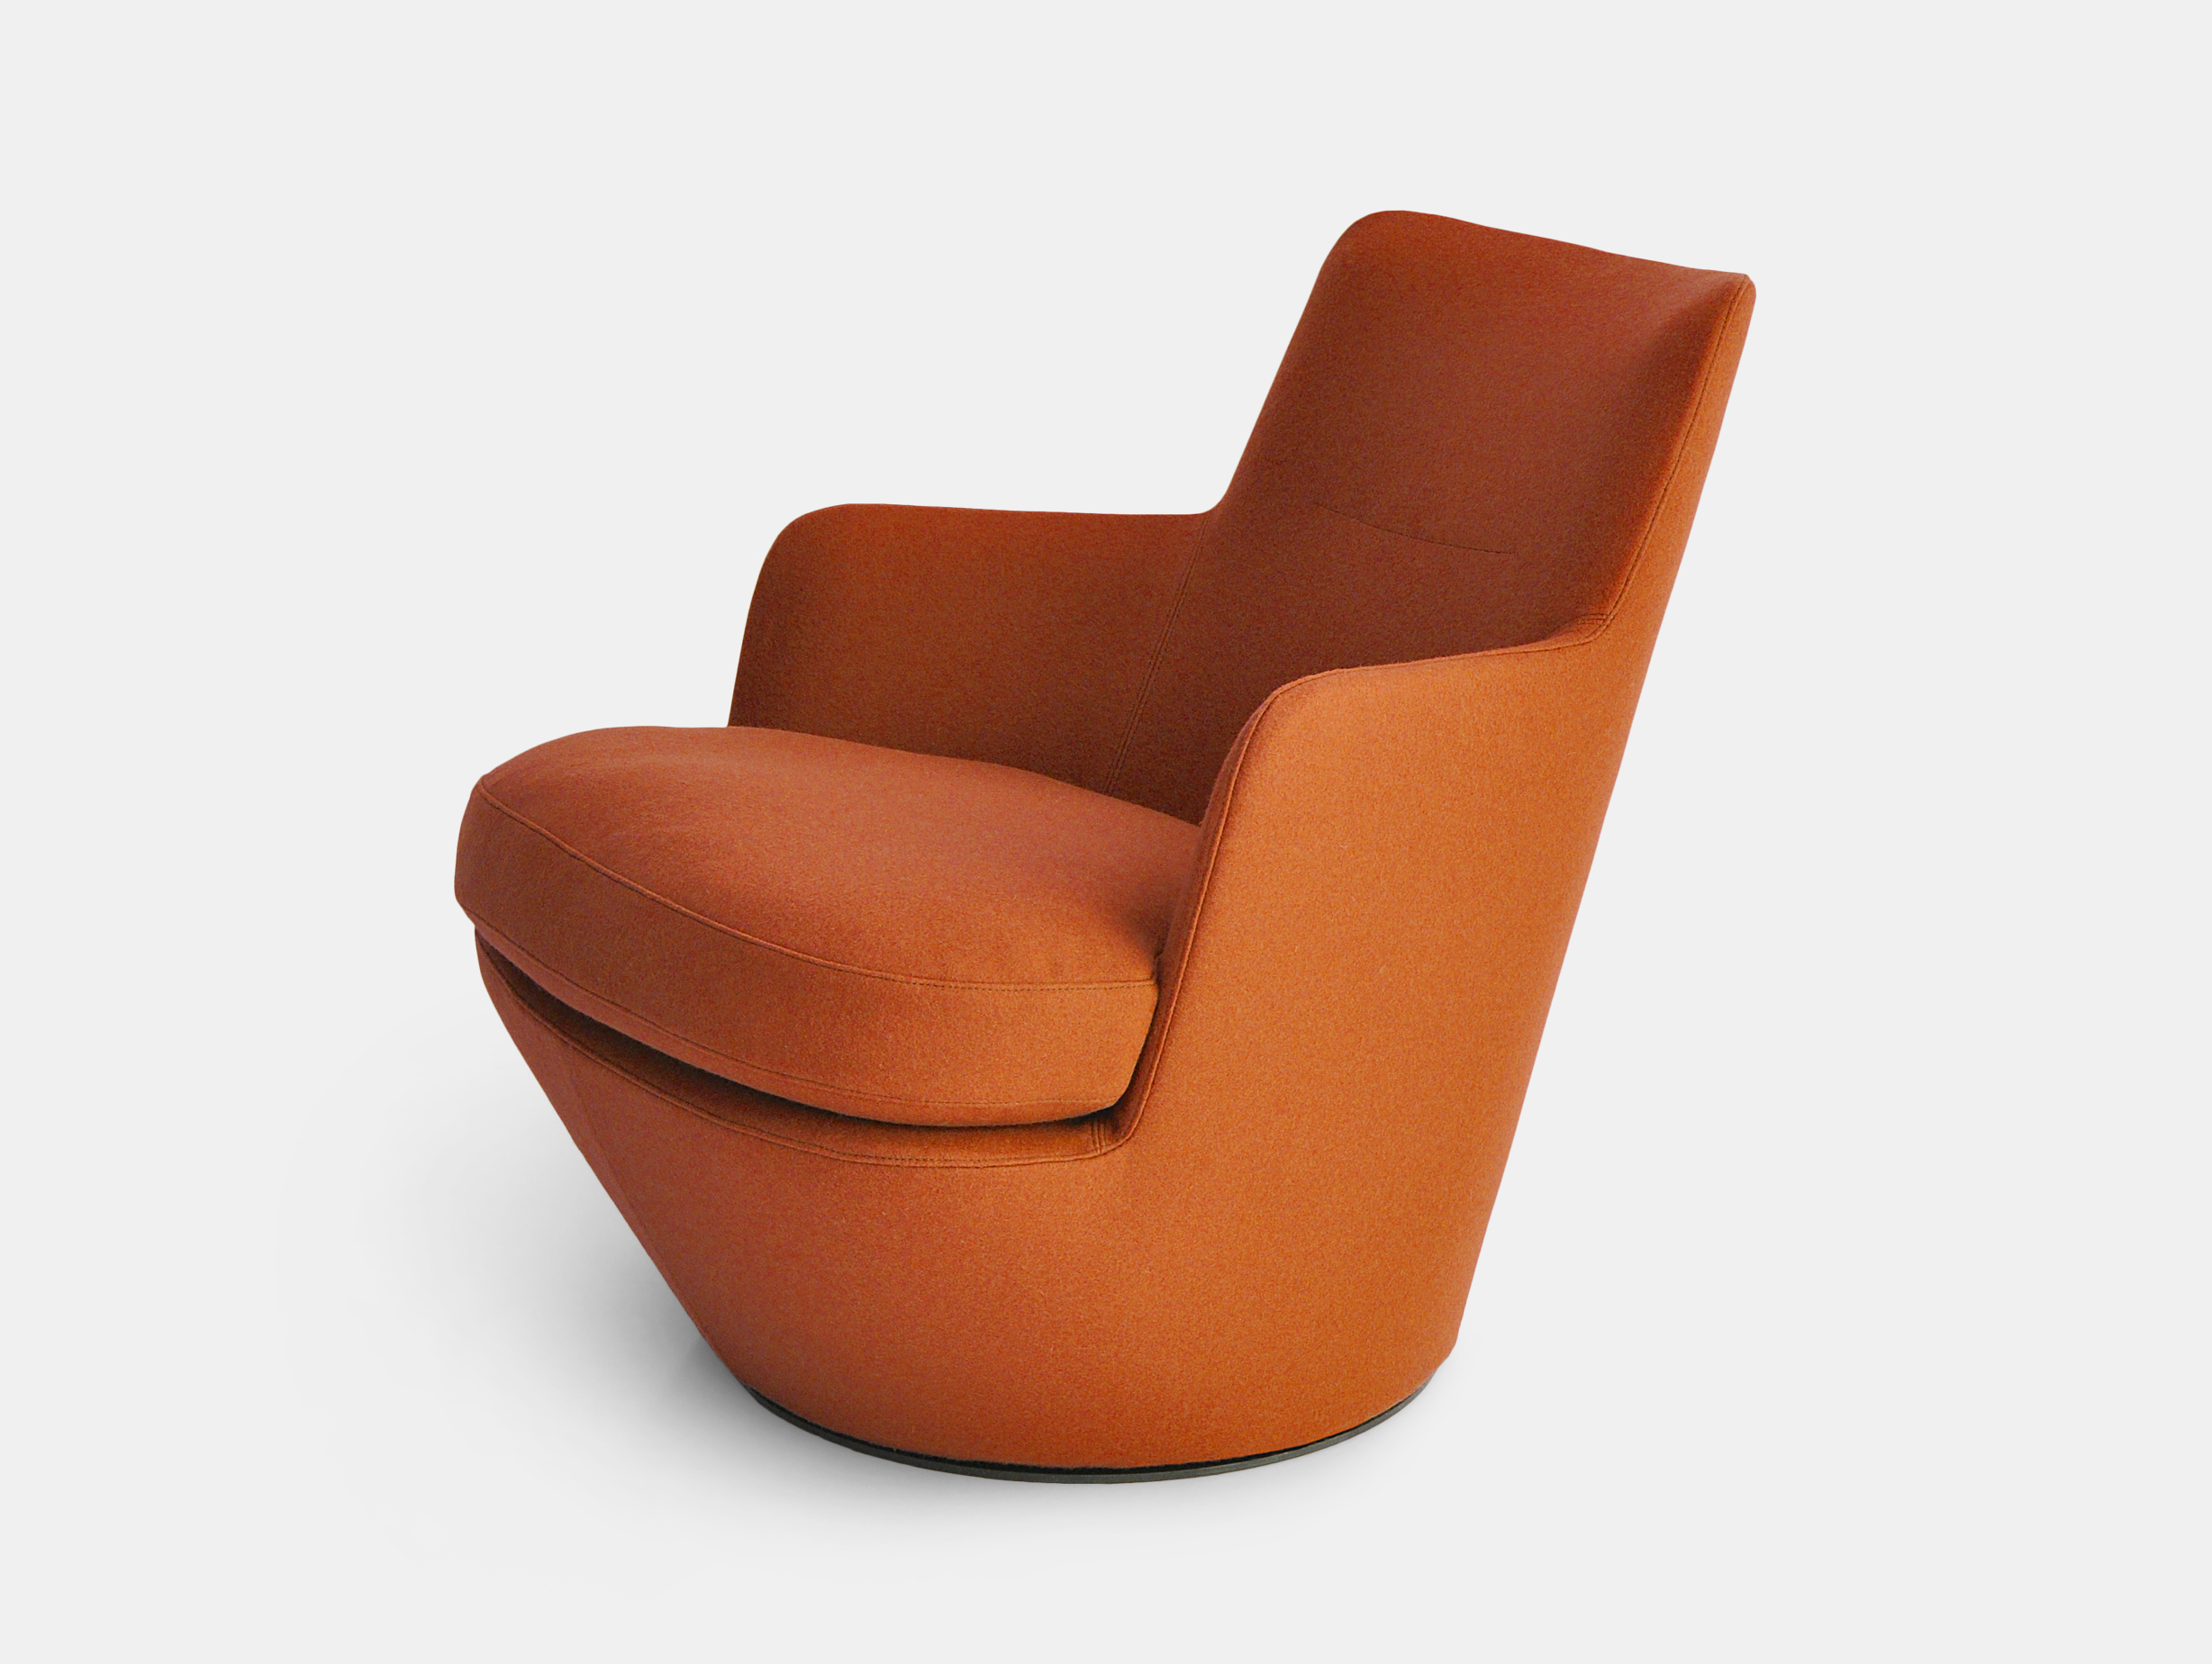 Swell Lo Turn Lounge Chair Ibusinesslaw Wood Chair Design Ideas Ibusinesslaworg